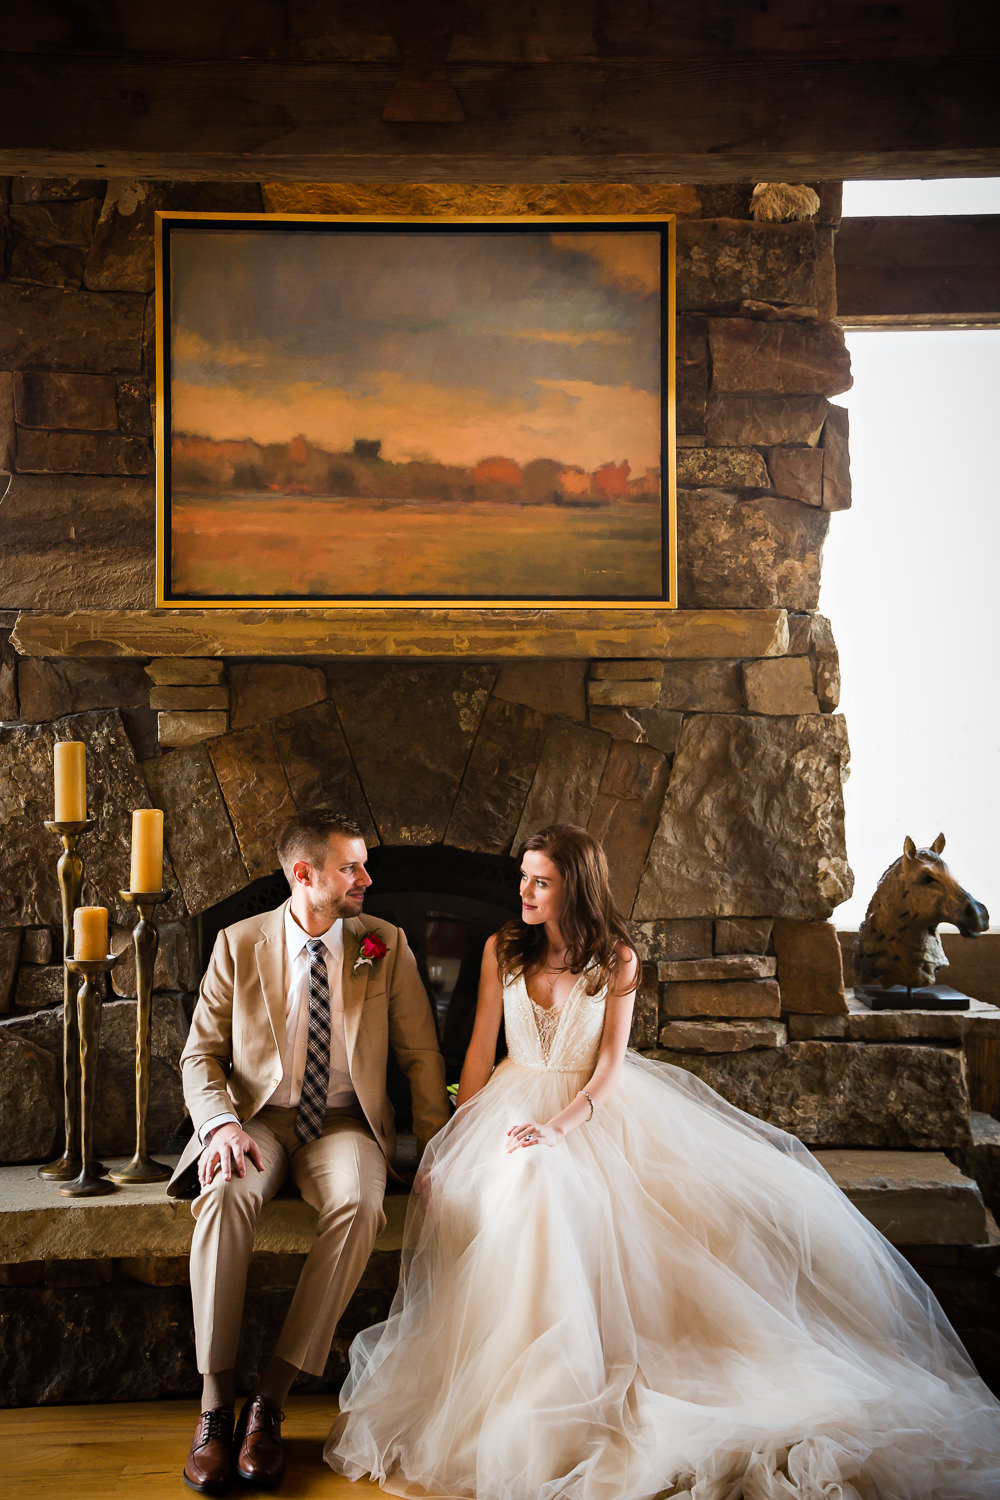 big-sky-wedding-becky-brockie-photography-latigo-fireplace.jpg